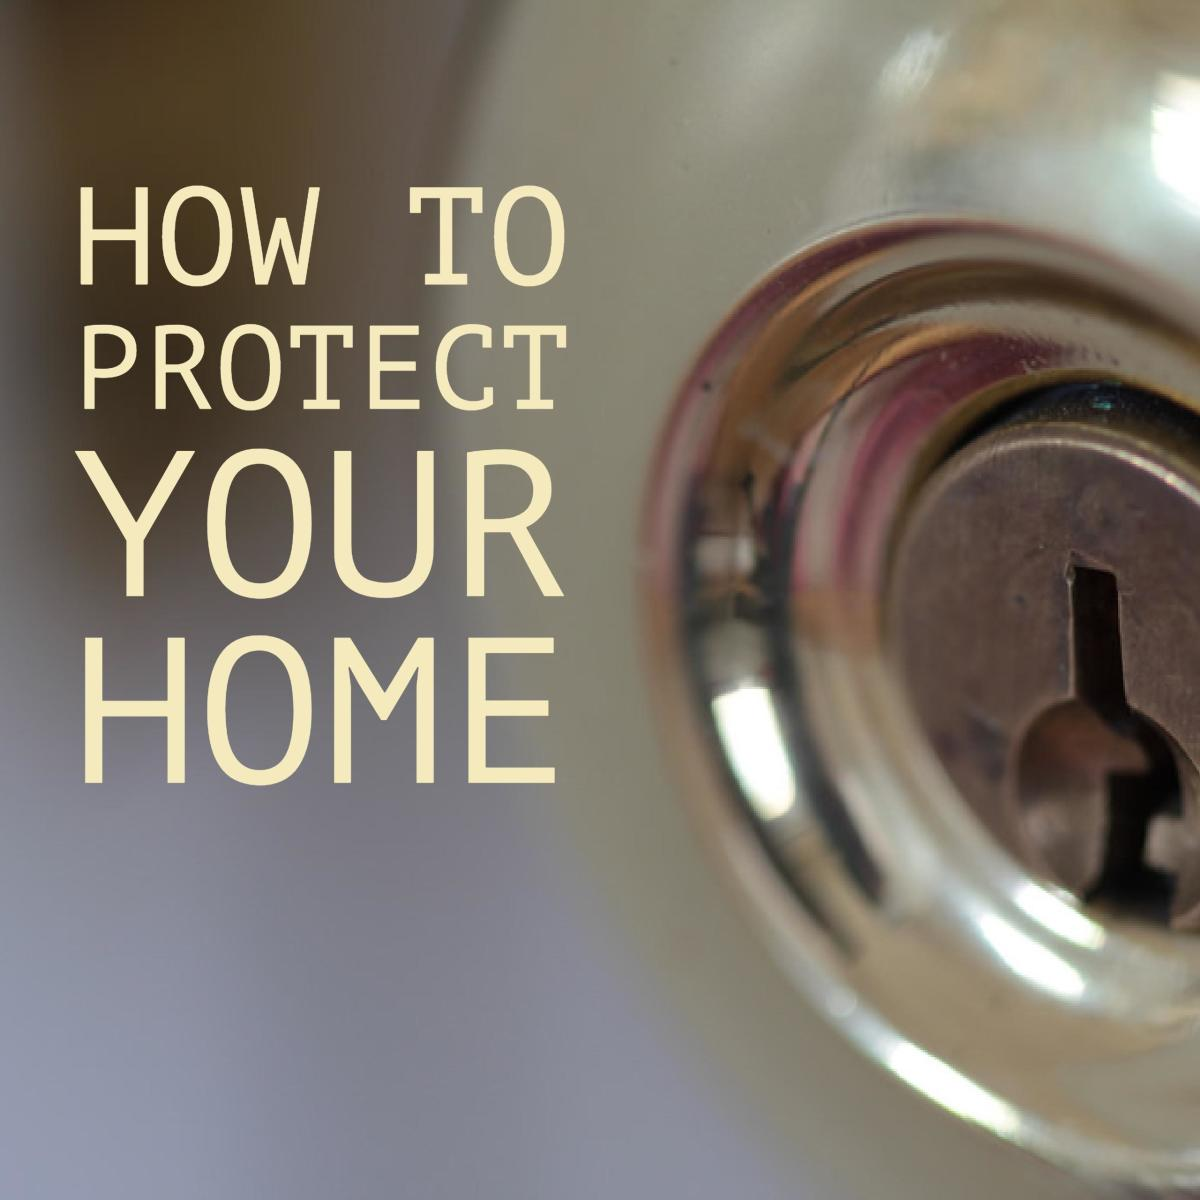 How to Improve Home Security in 13 Easy Ways